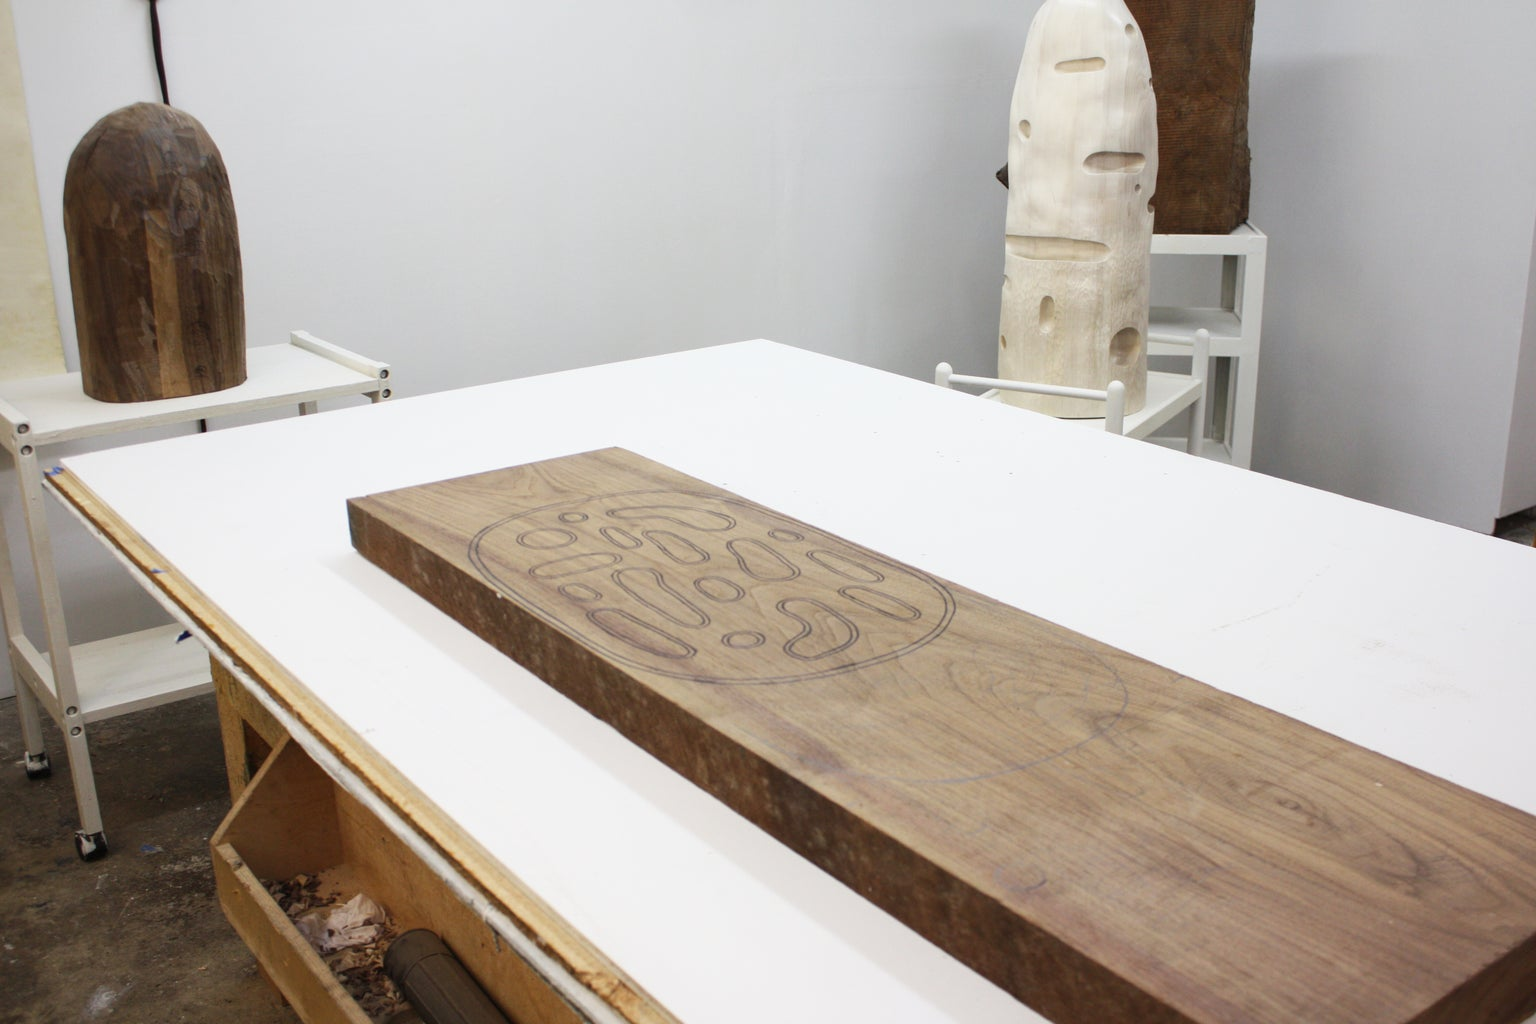 Transfer Your Design Onto Your Wood